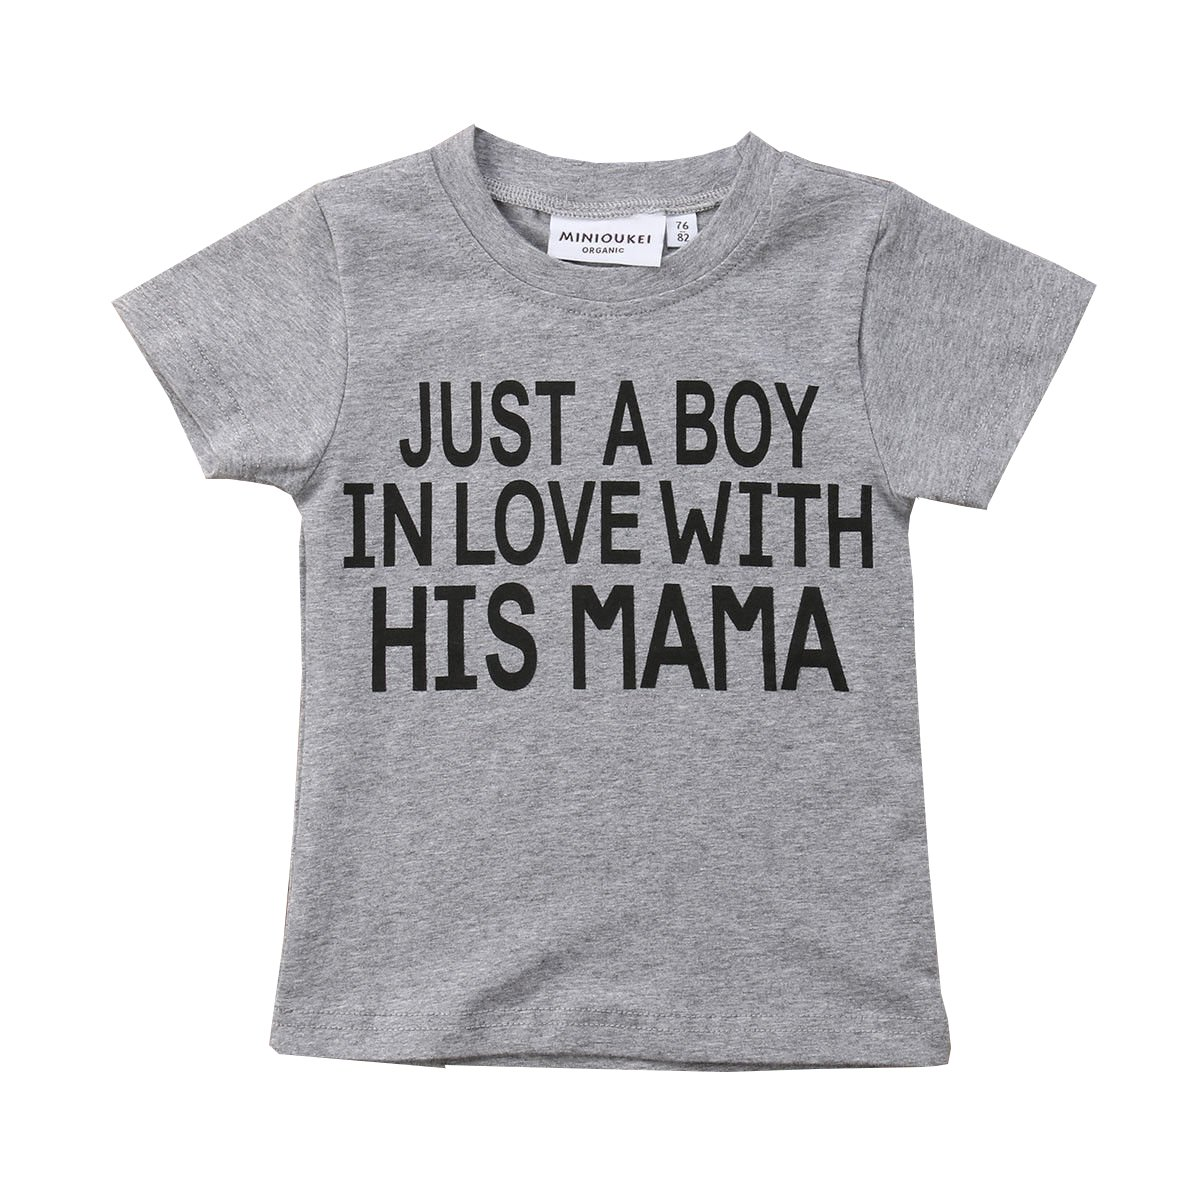 Mubineo Toddler Baby Girl Boy Funny Short Sleeve Cotton T Shirts Tops Tee Clothe